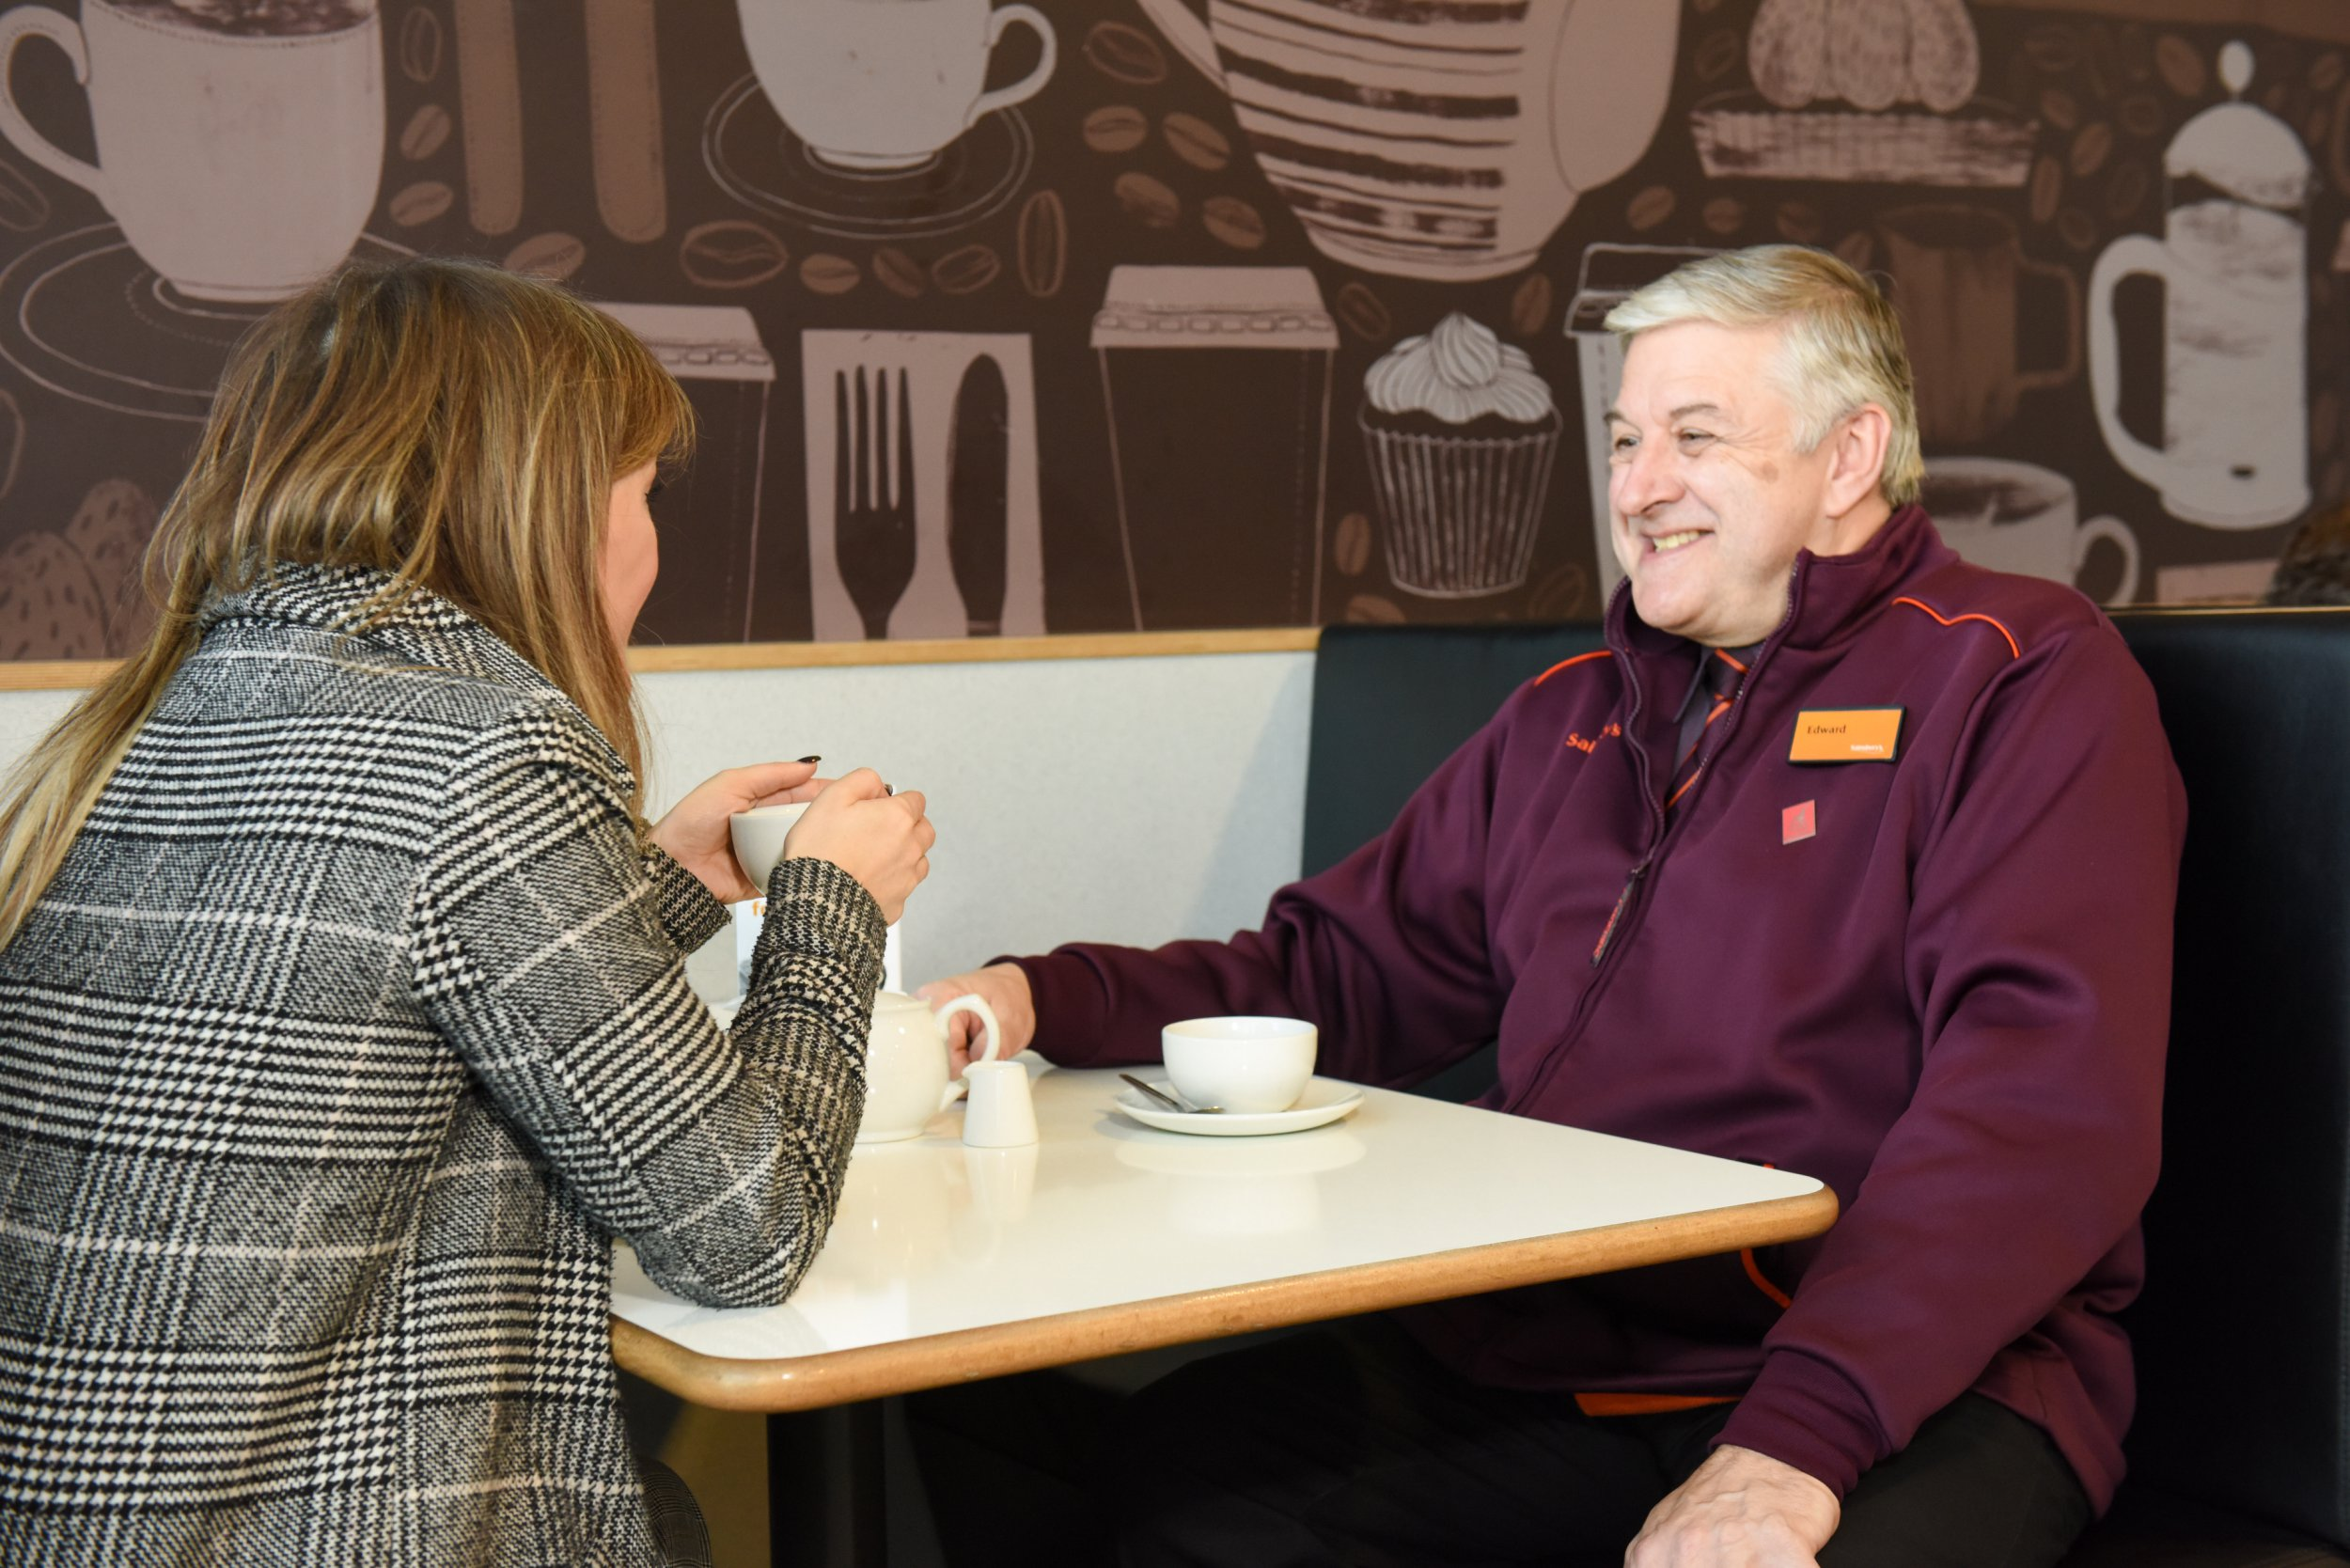 Sainsbury's is testing out talking tables to combat loneliness